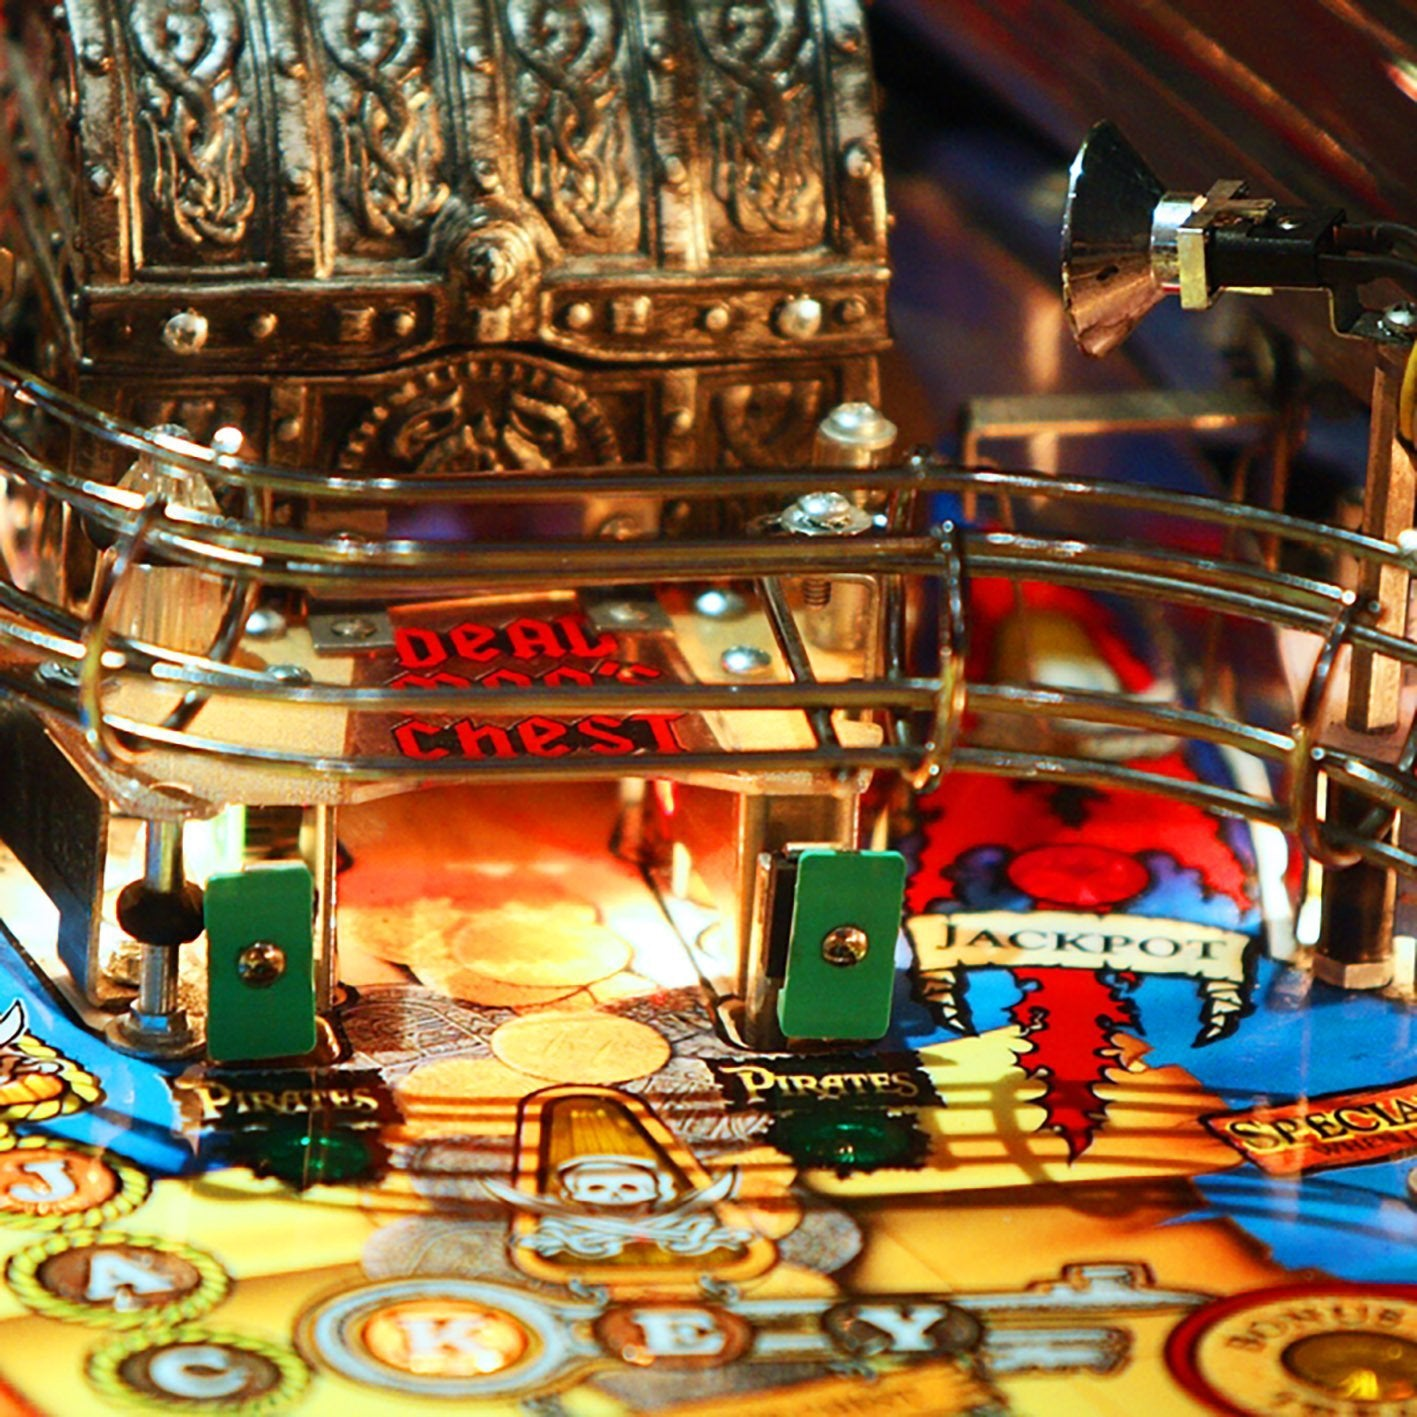 1999 Pirates of the Caribbean Pinball Machine by Stern